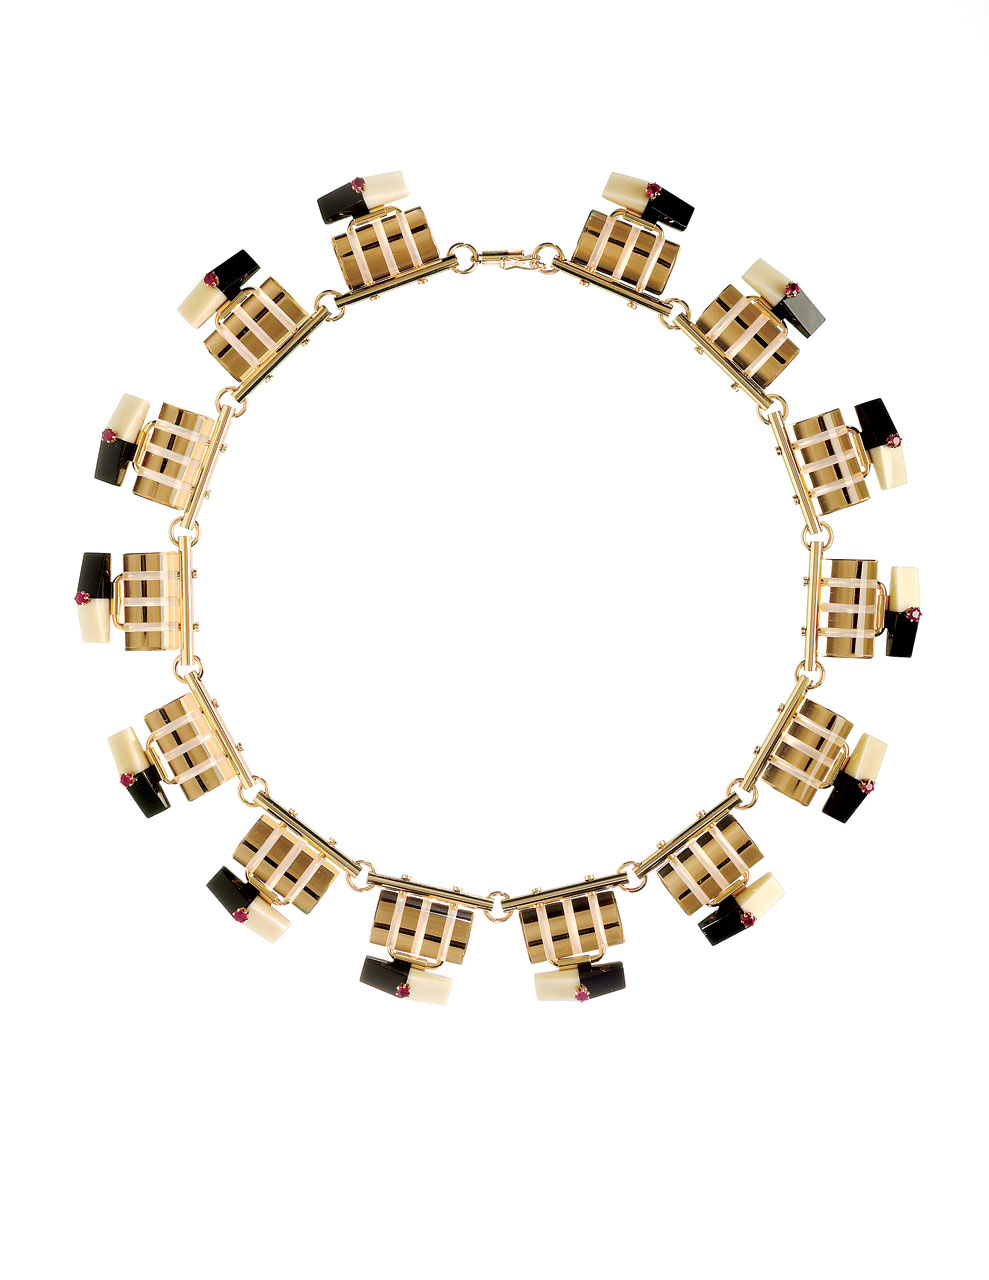 LUCENT LINES SERIES NO. 20 NECKLACE of polished clear optical, black and cream Vitrolite glass, ruby details, fourteen karat yellow gold, 16.5 centimeters diameter, 2004.